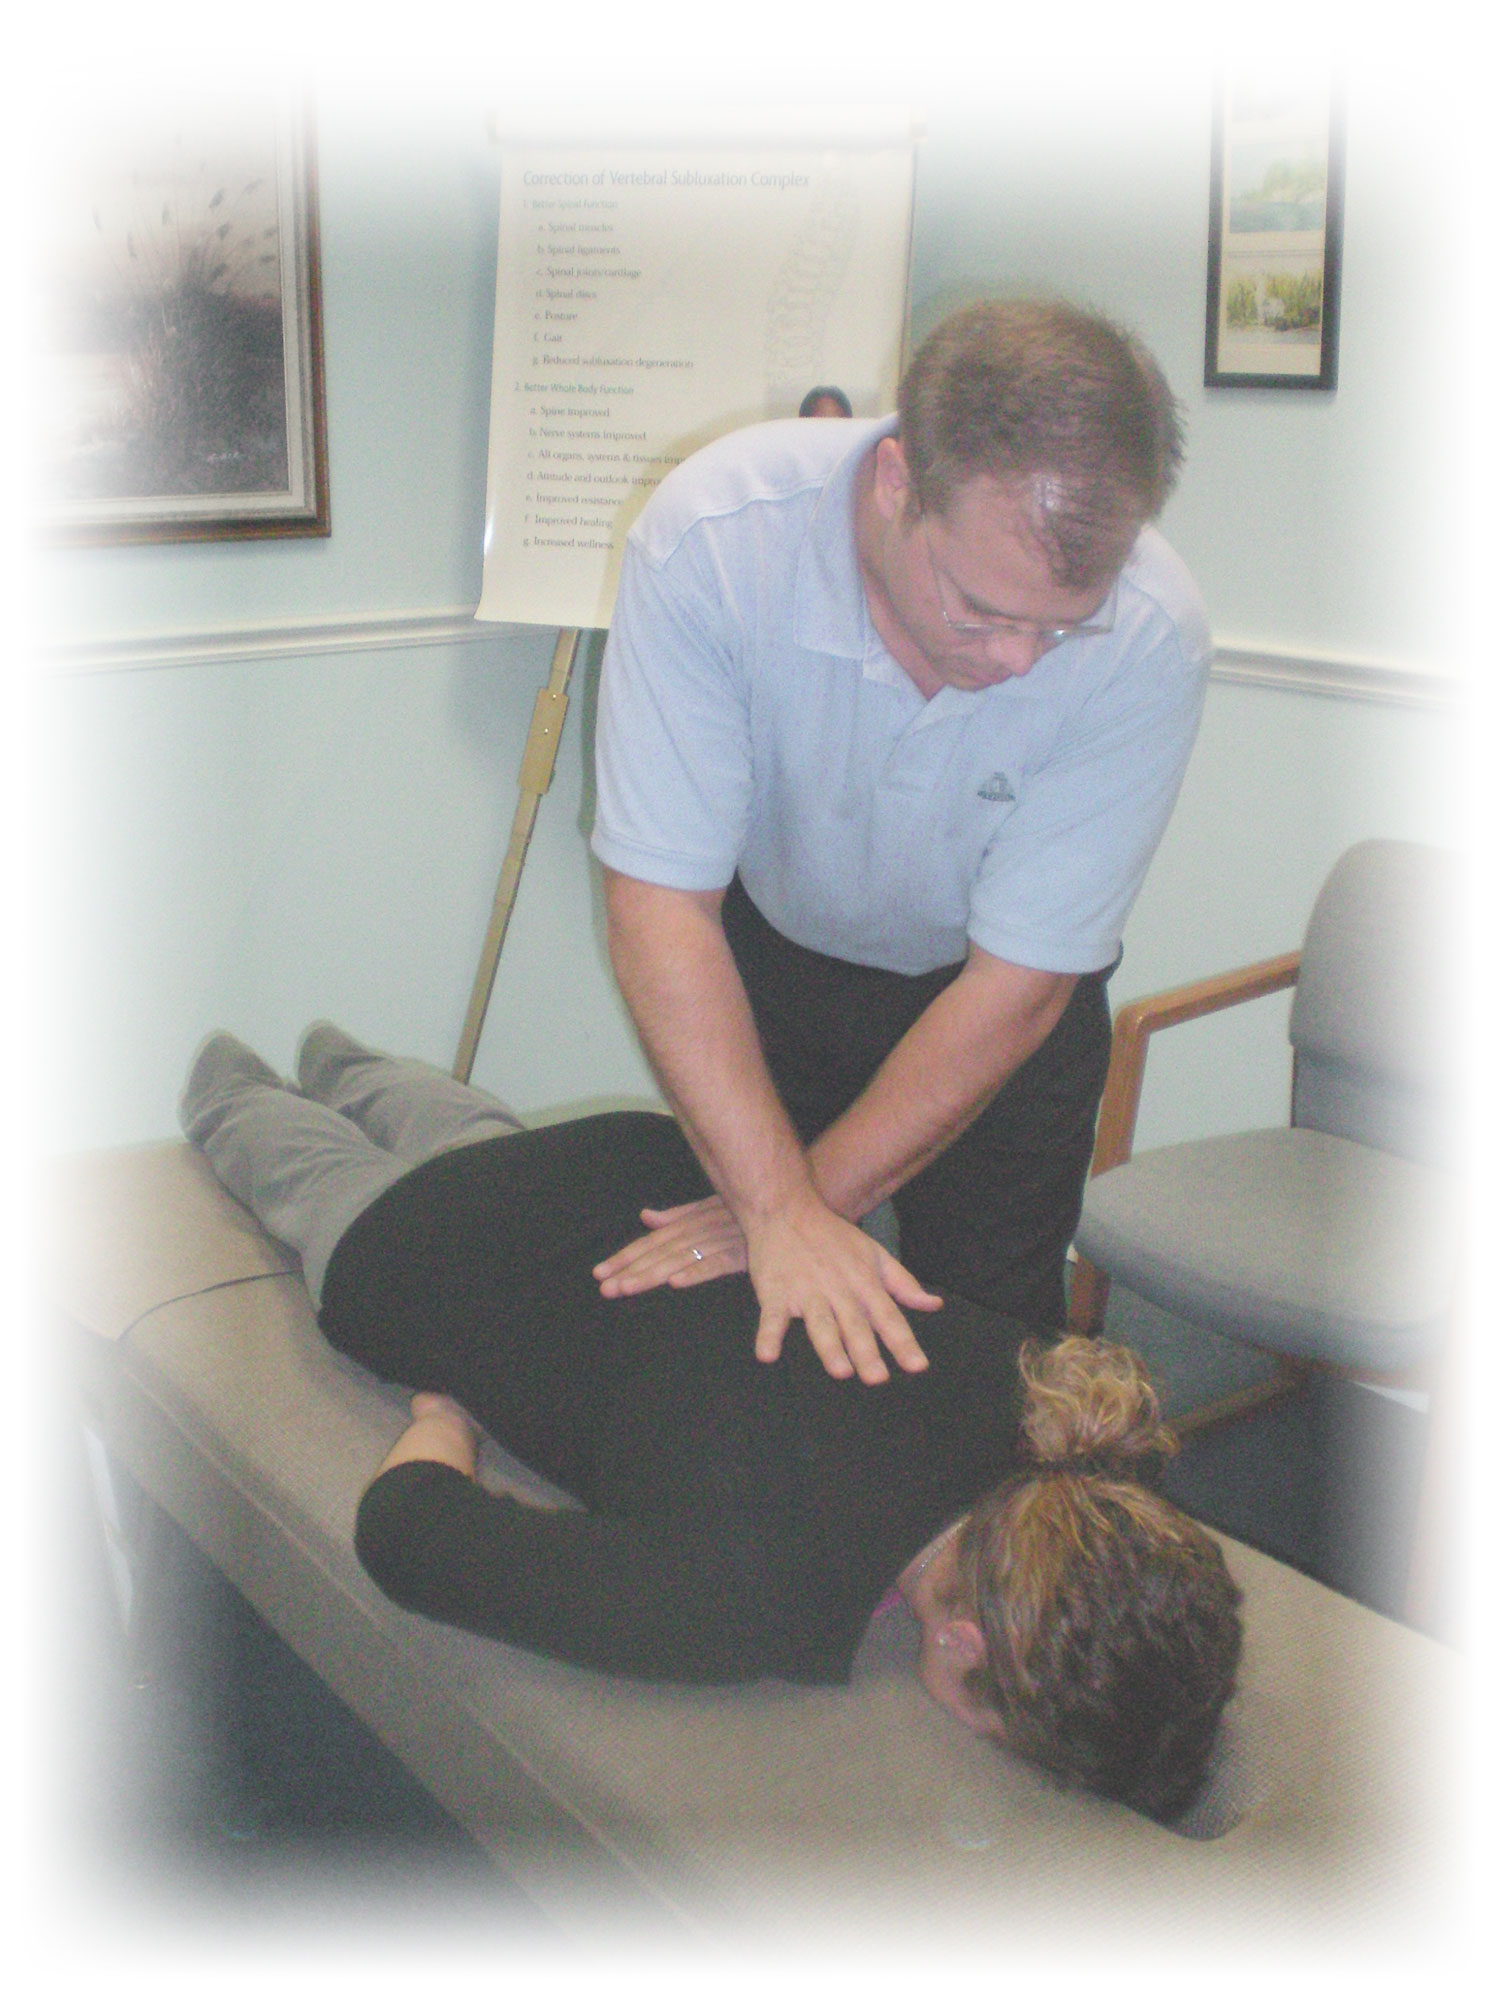 Dr. Jay Anderson chiropractic adjustment